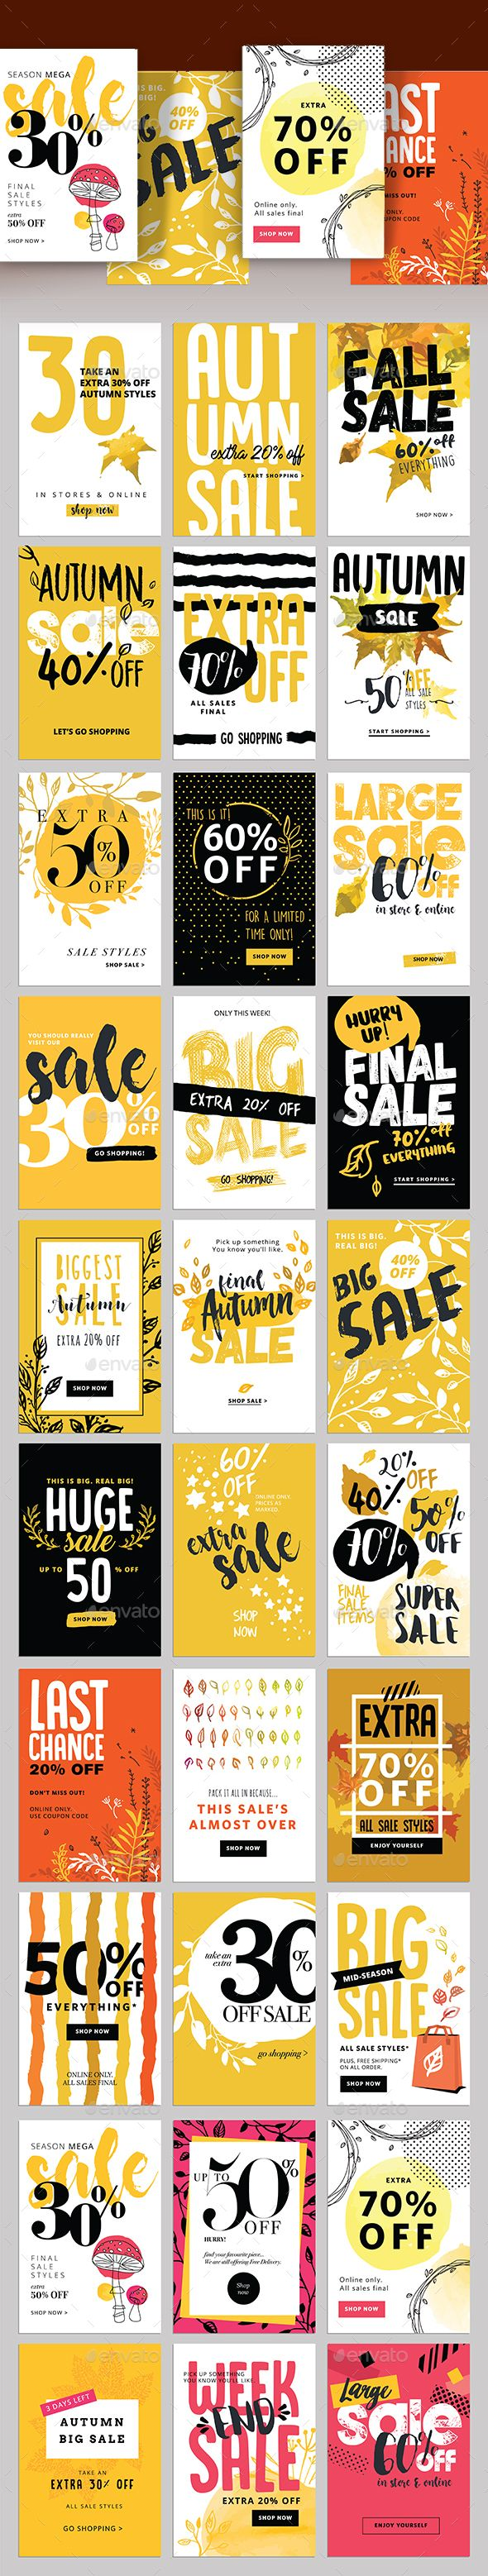 Advertising Poster Templates Mesmerizing 68 Best Creative Layouts Images On Pinterest  Page Layout Graph .